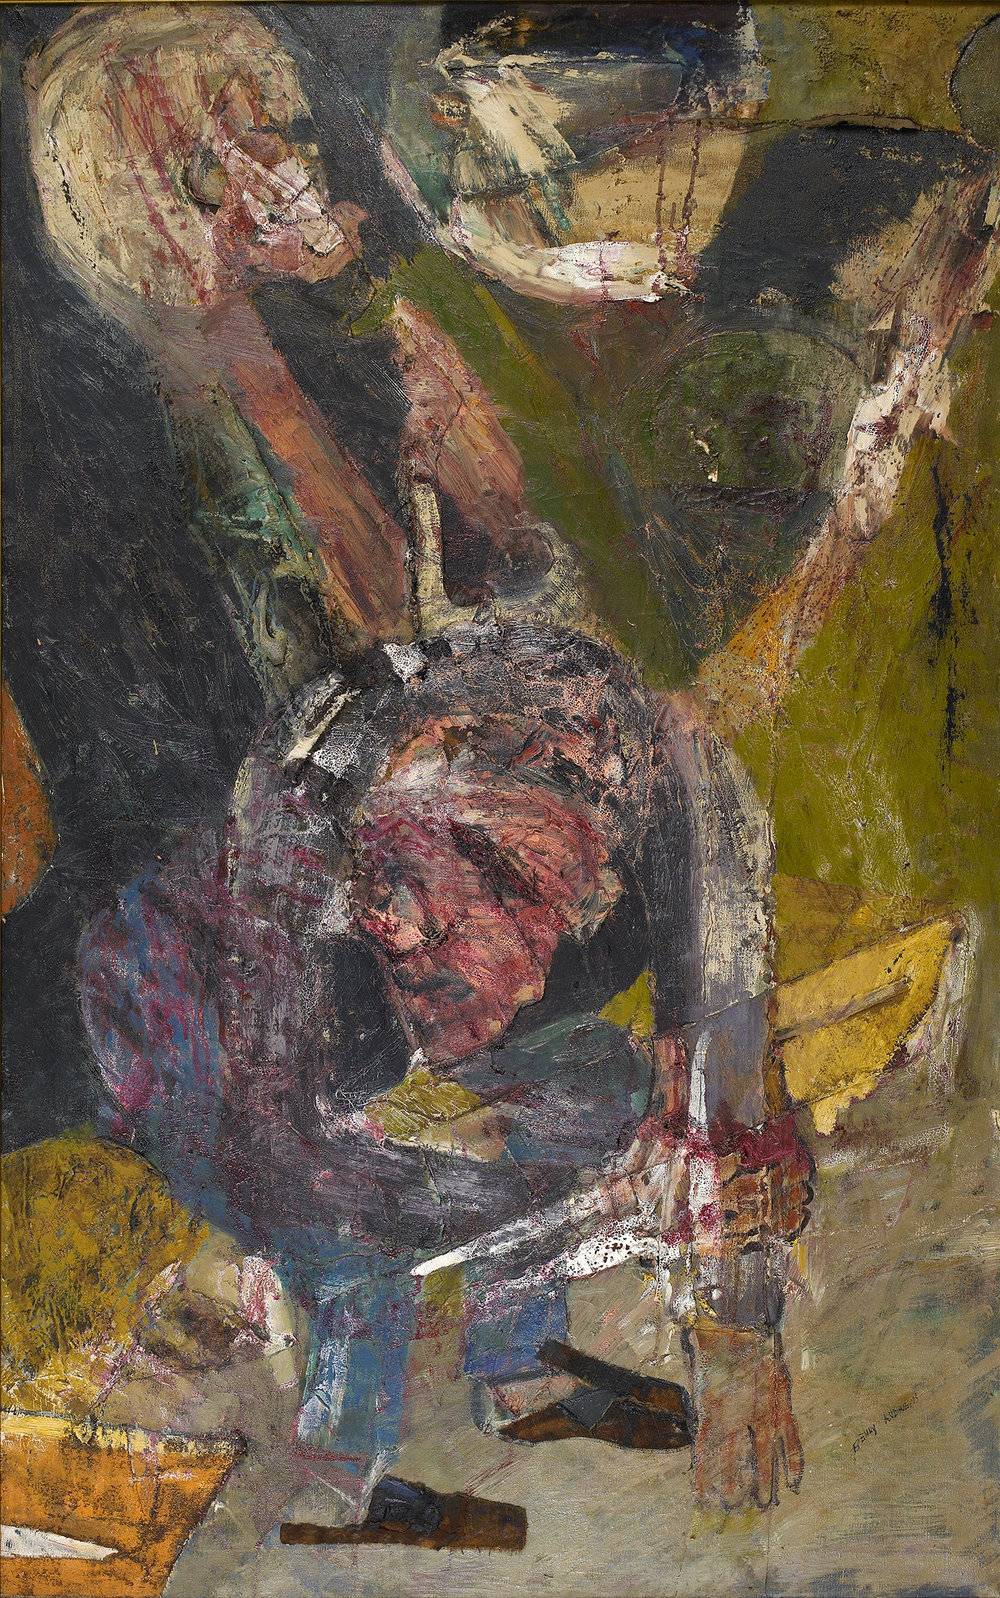 Untitled, c. 1960s, collage on canvas, 48 x 30 inches